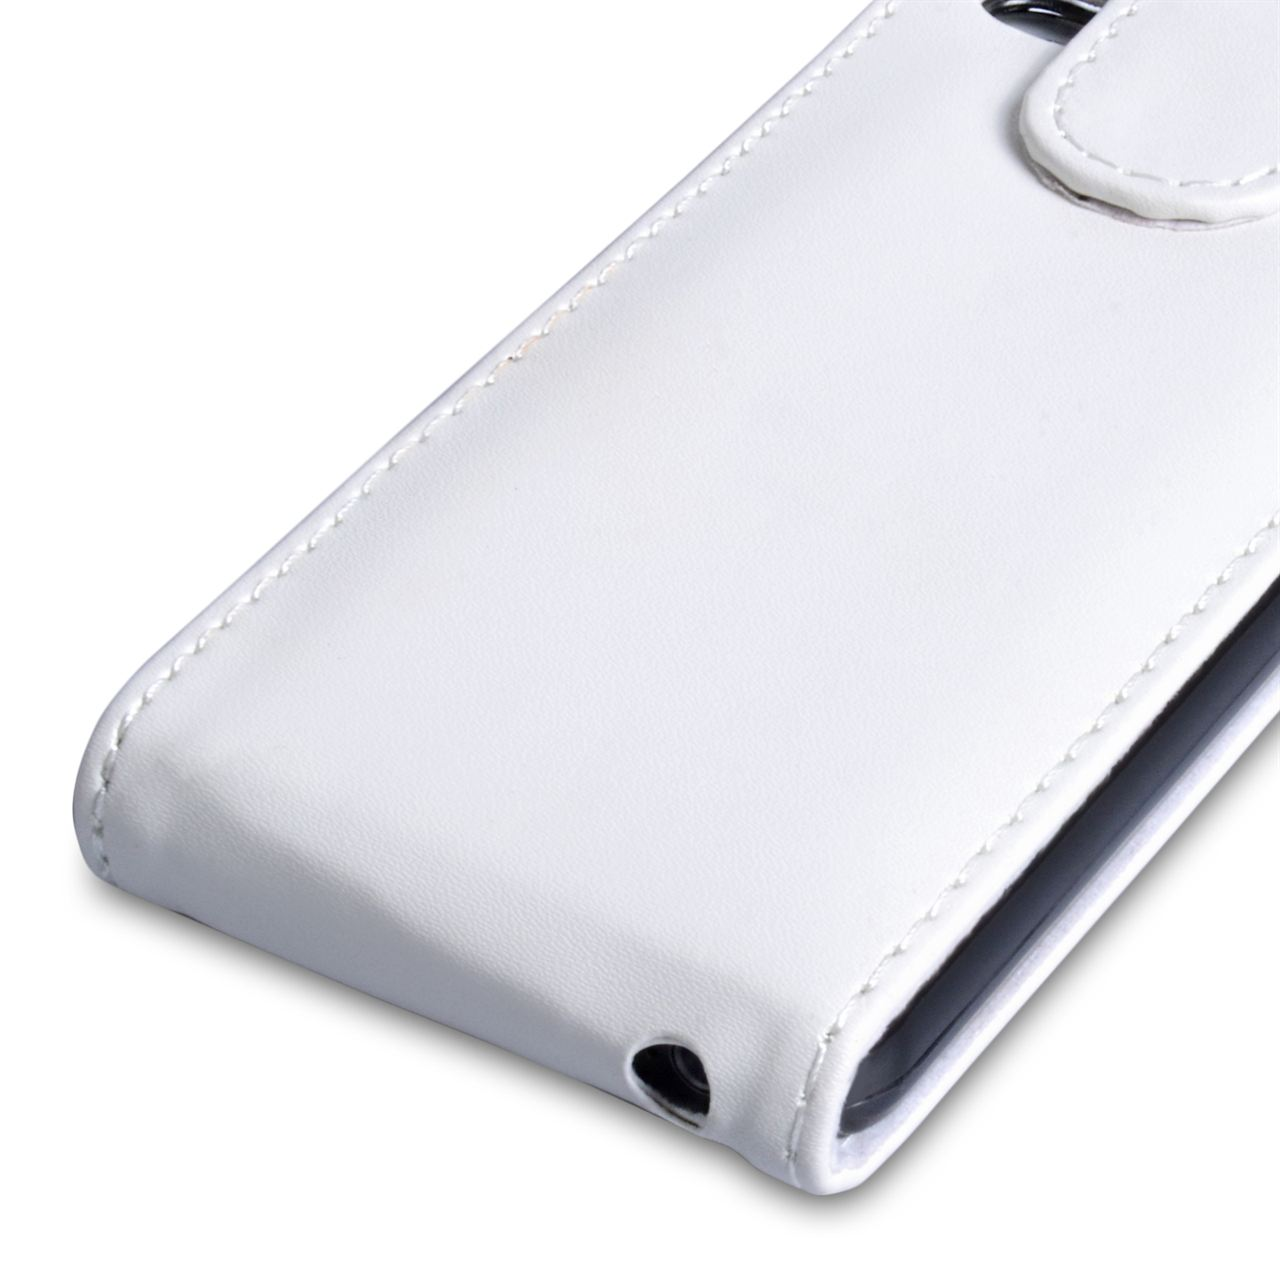 YouSave Accessories iPhone 5C Leather Effect Flip Case - White